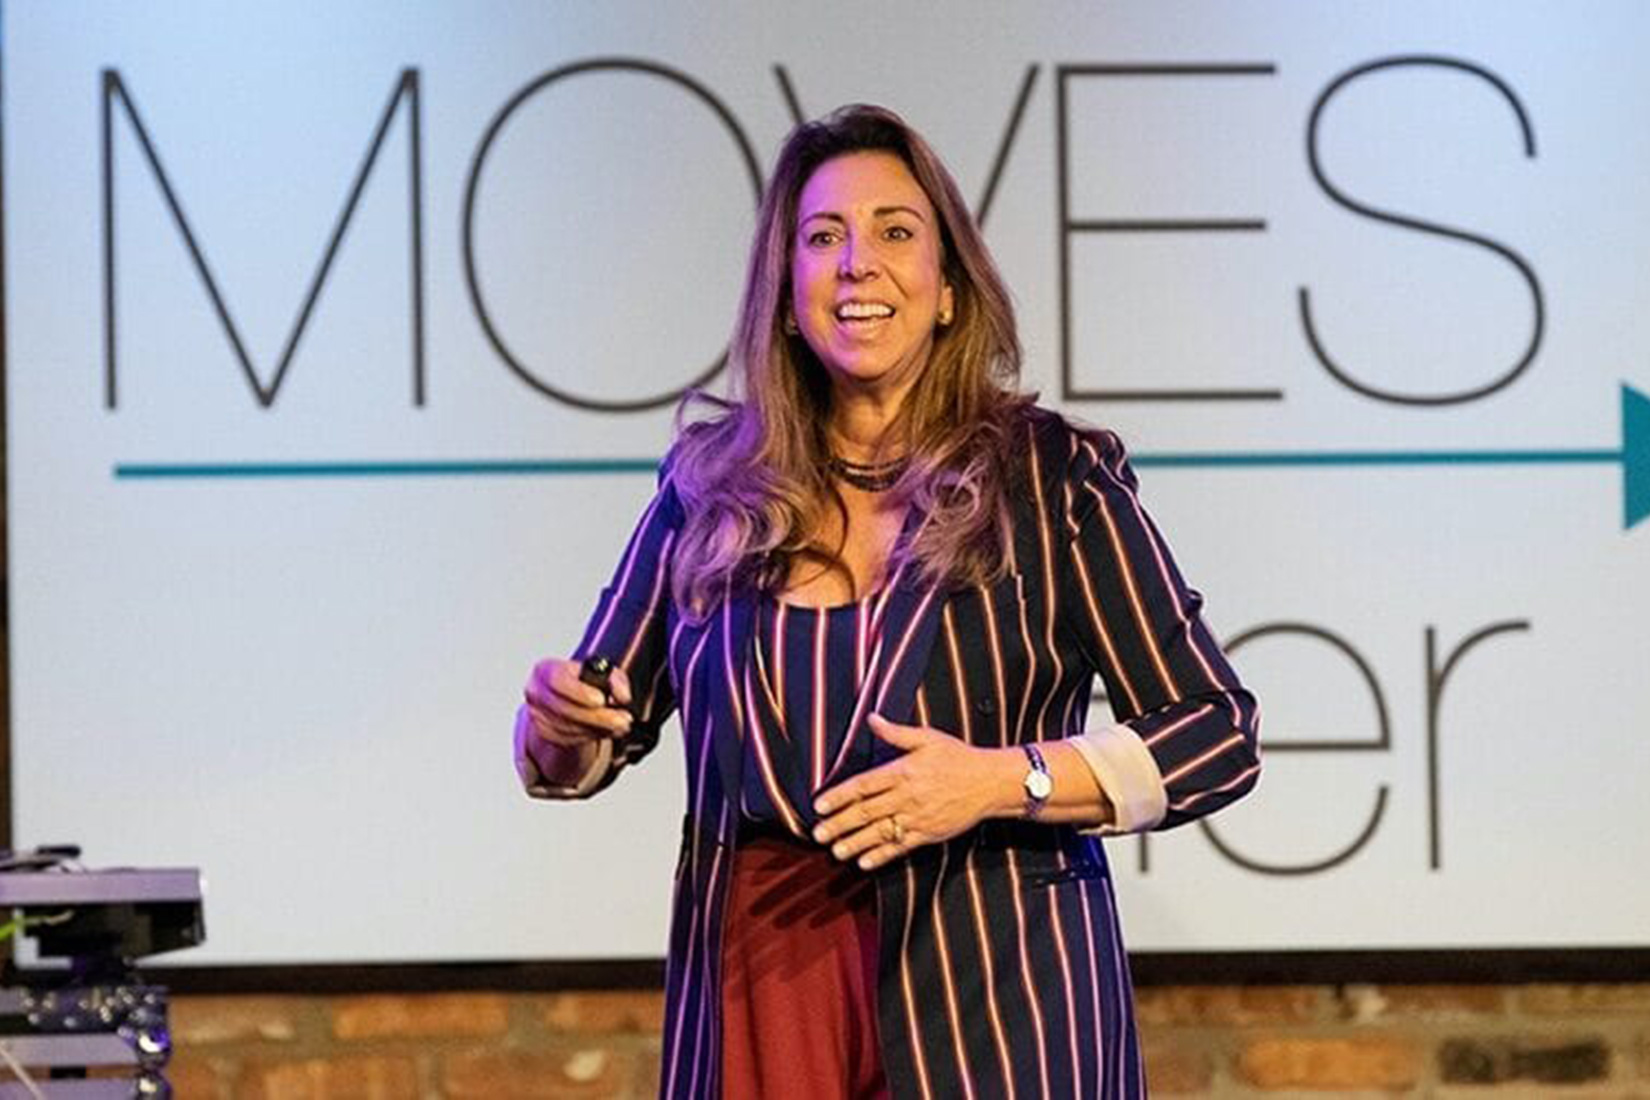 Women in Real Estate: 'What Moves Her' Campaign Helps Develop Female Leaders